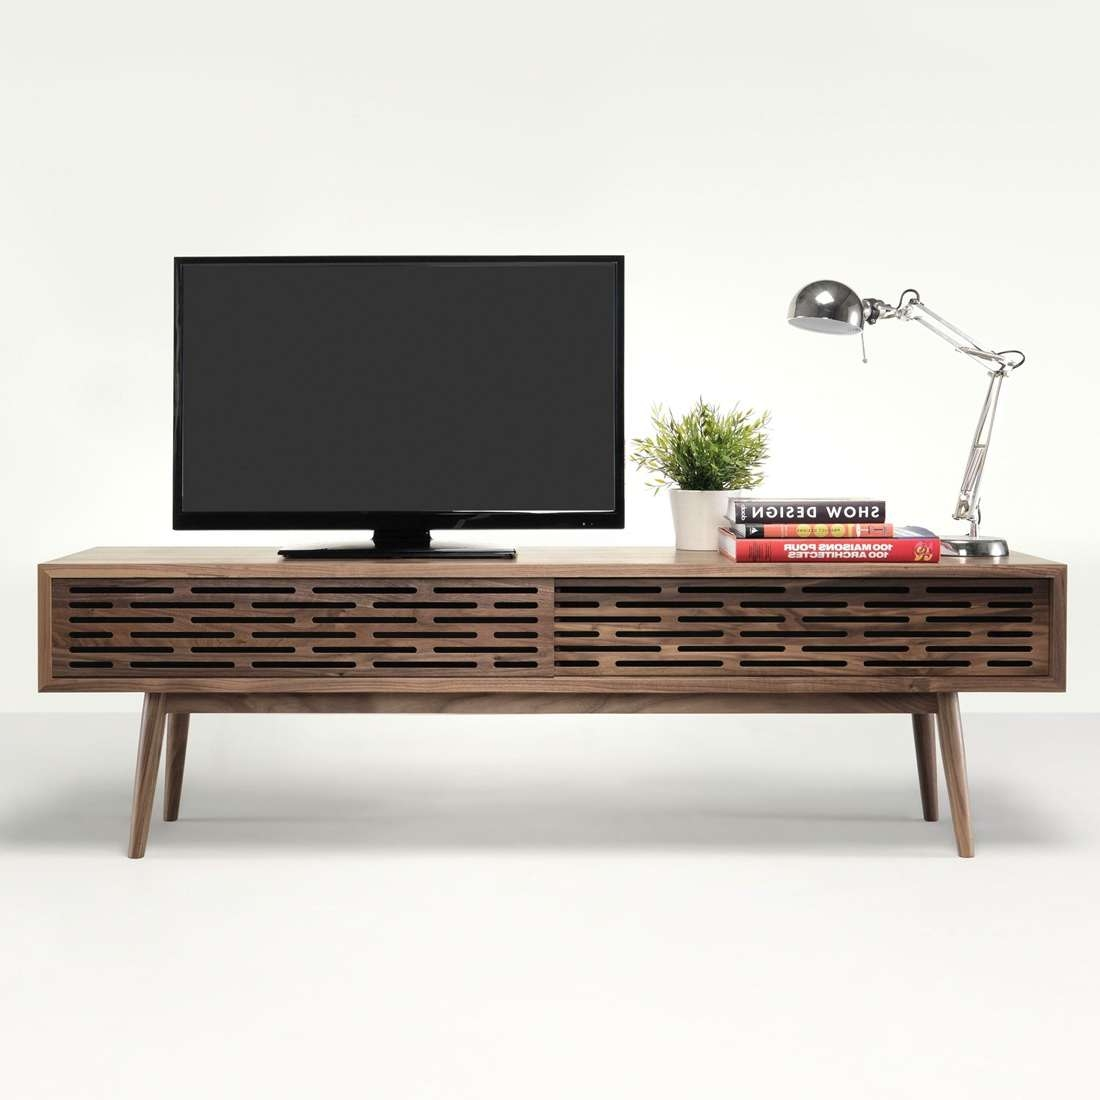 We Wood Radio Solid Walnut Tv Cabinet | Radio Solid Walnut Tv Within Walnut Tv Cabinets (View 20 of 20)